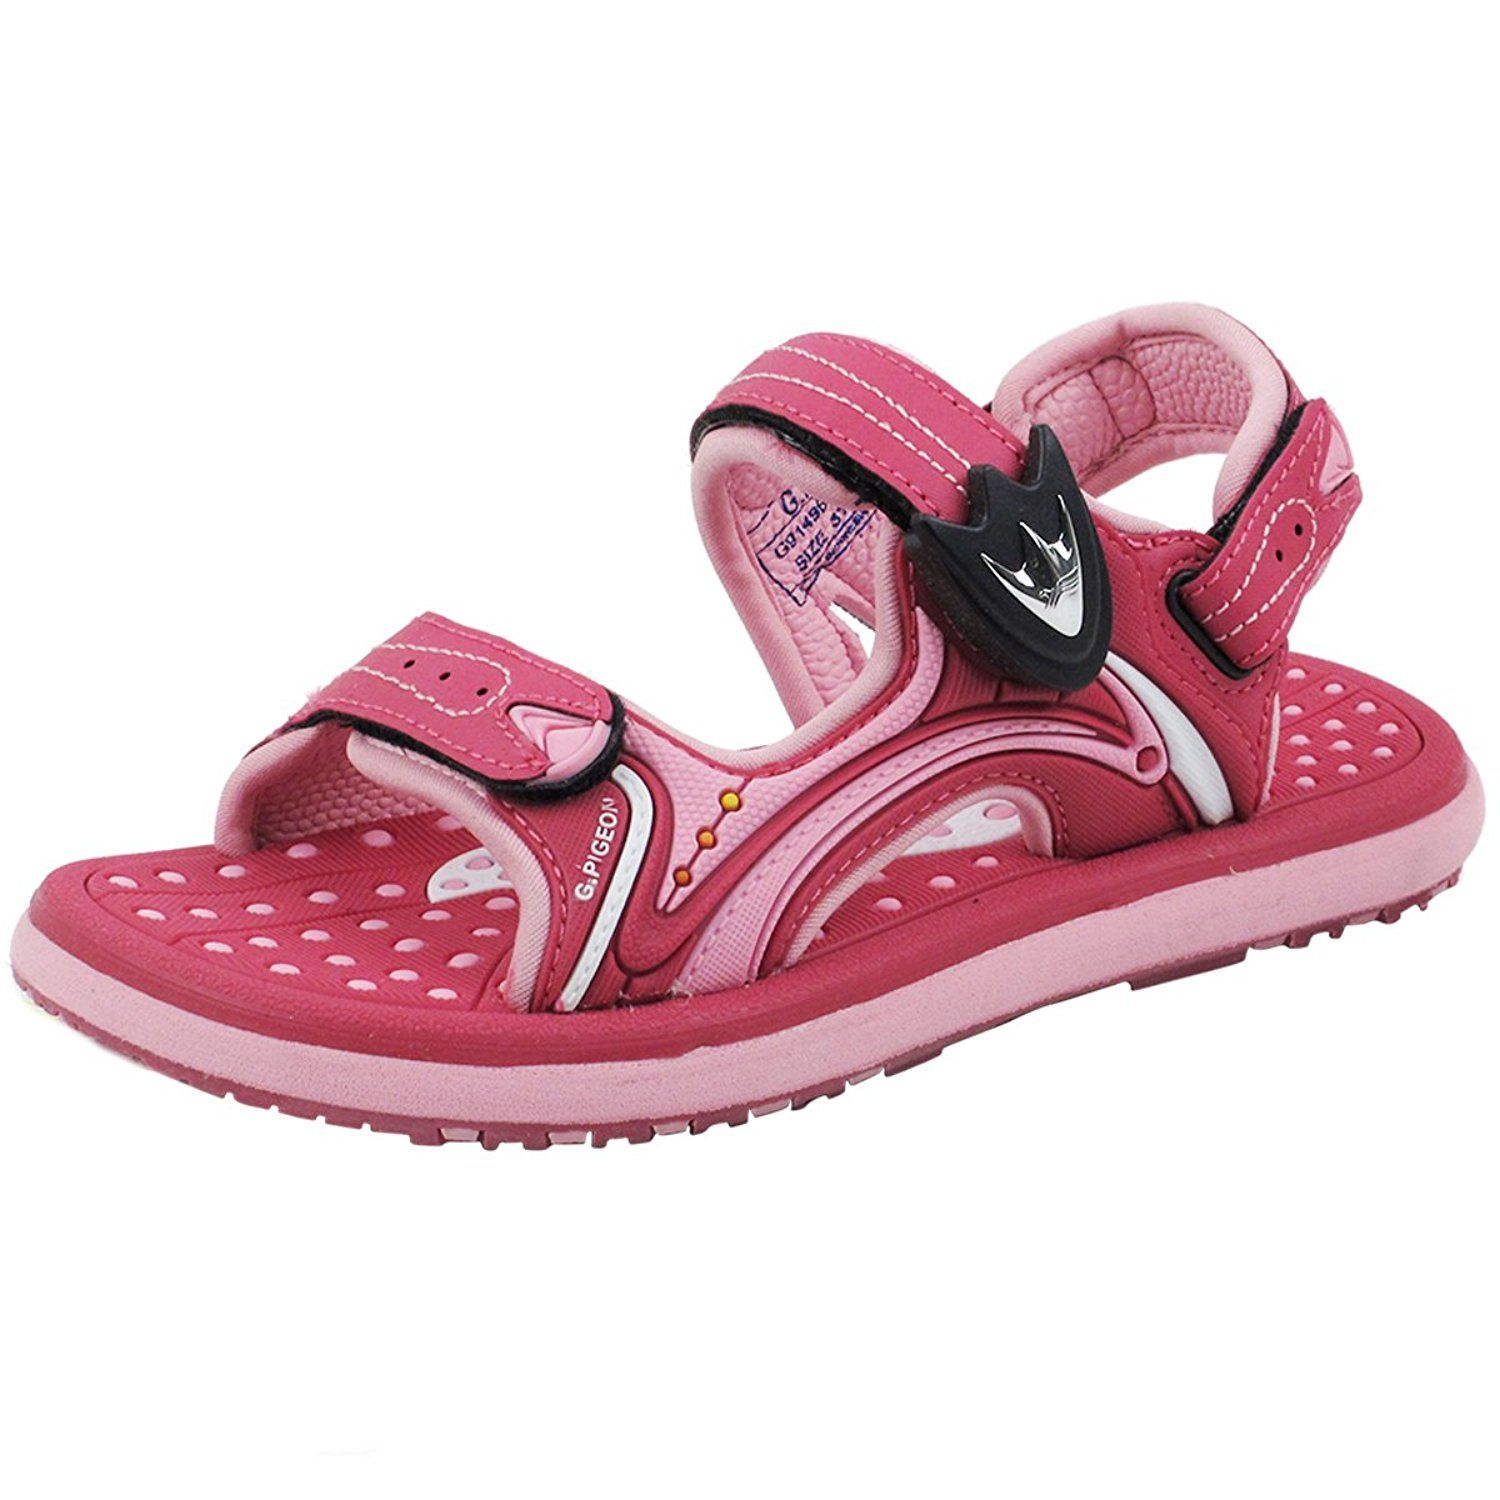 Details zu Infant Girls Birkenstock Sandals Pink Size 25 UK 8